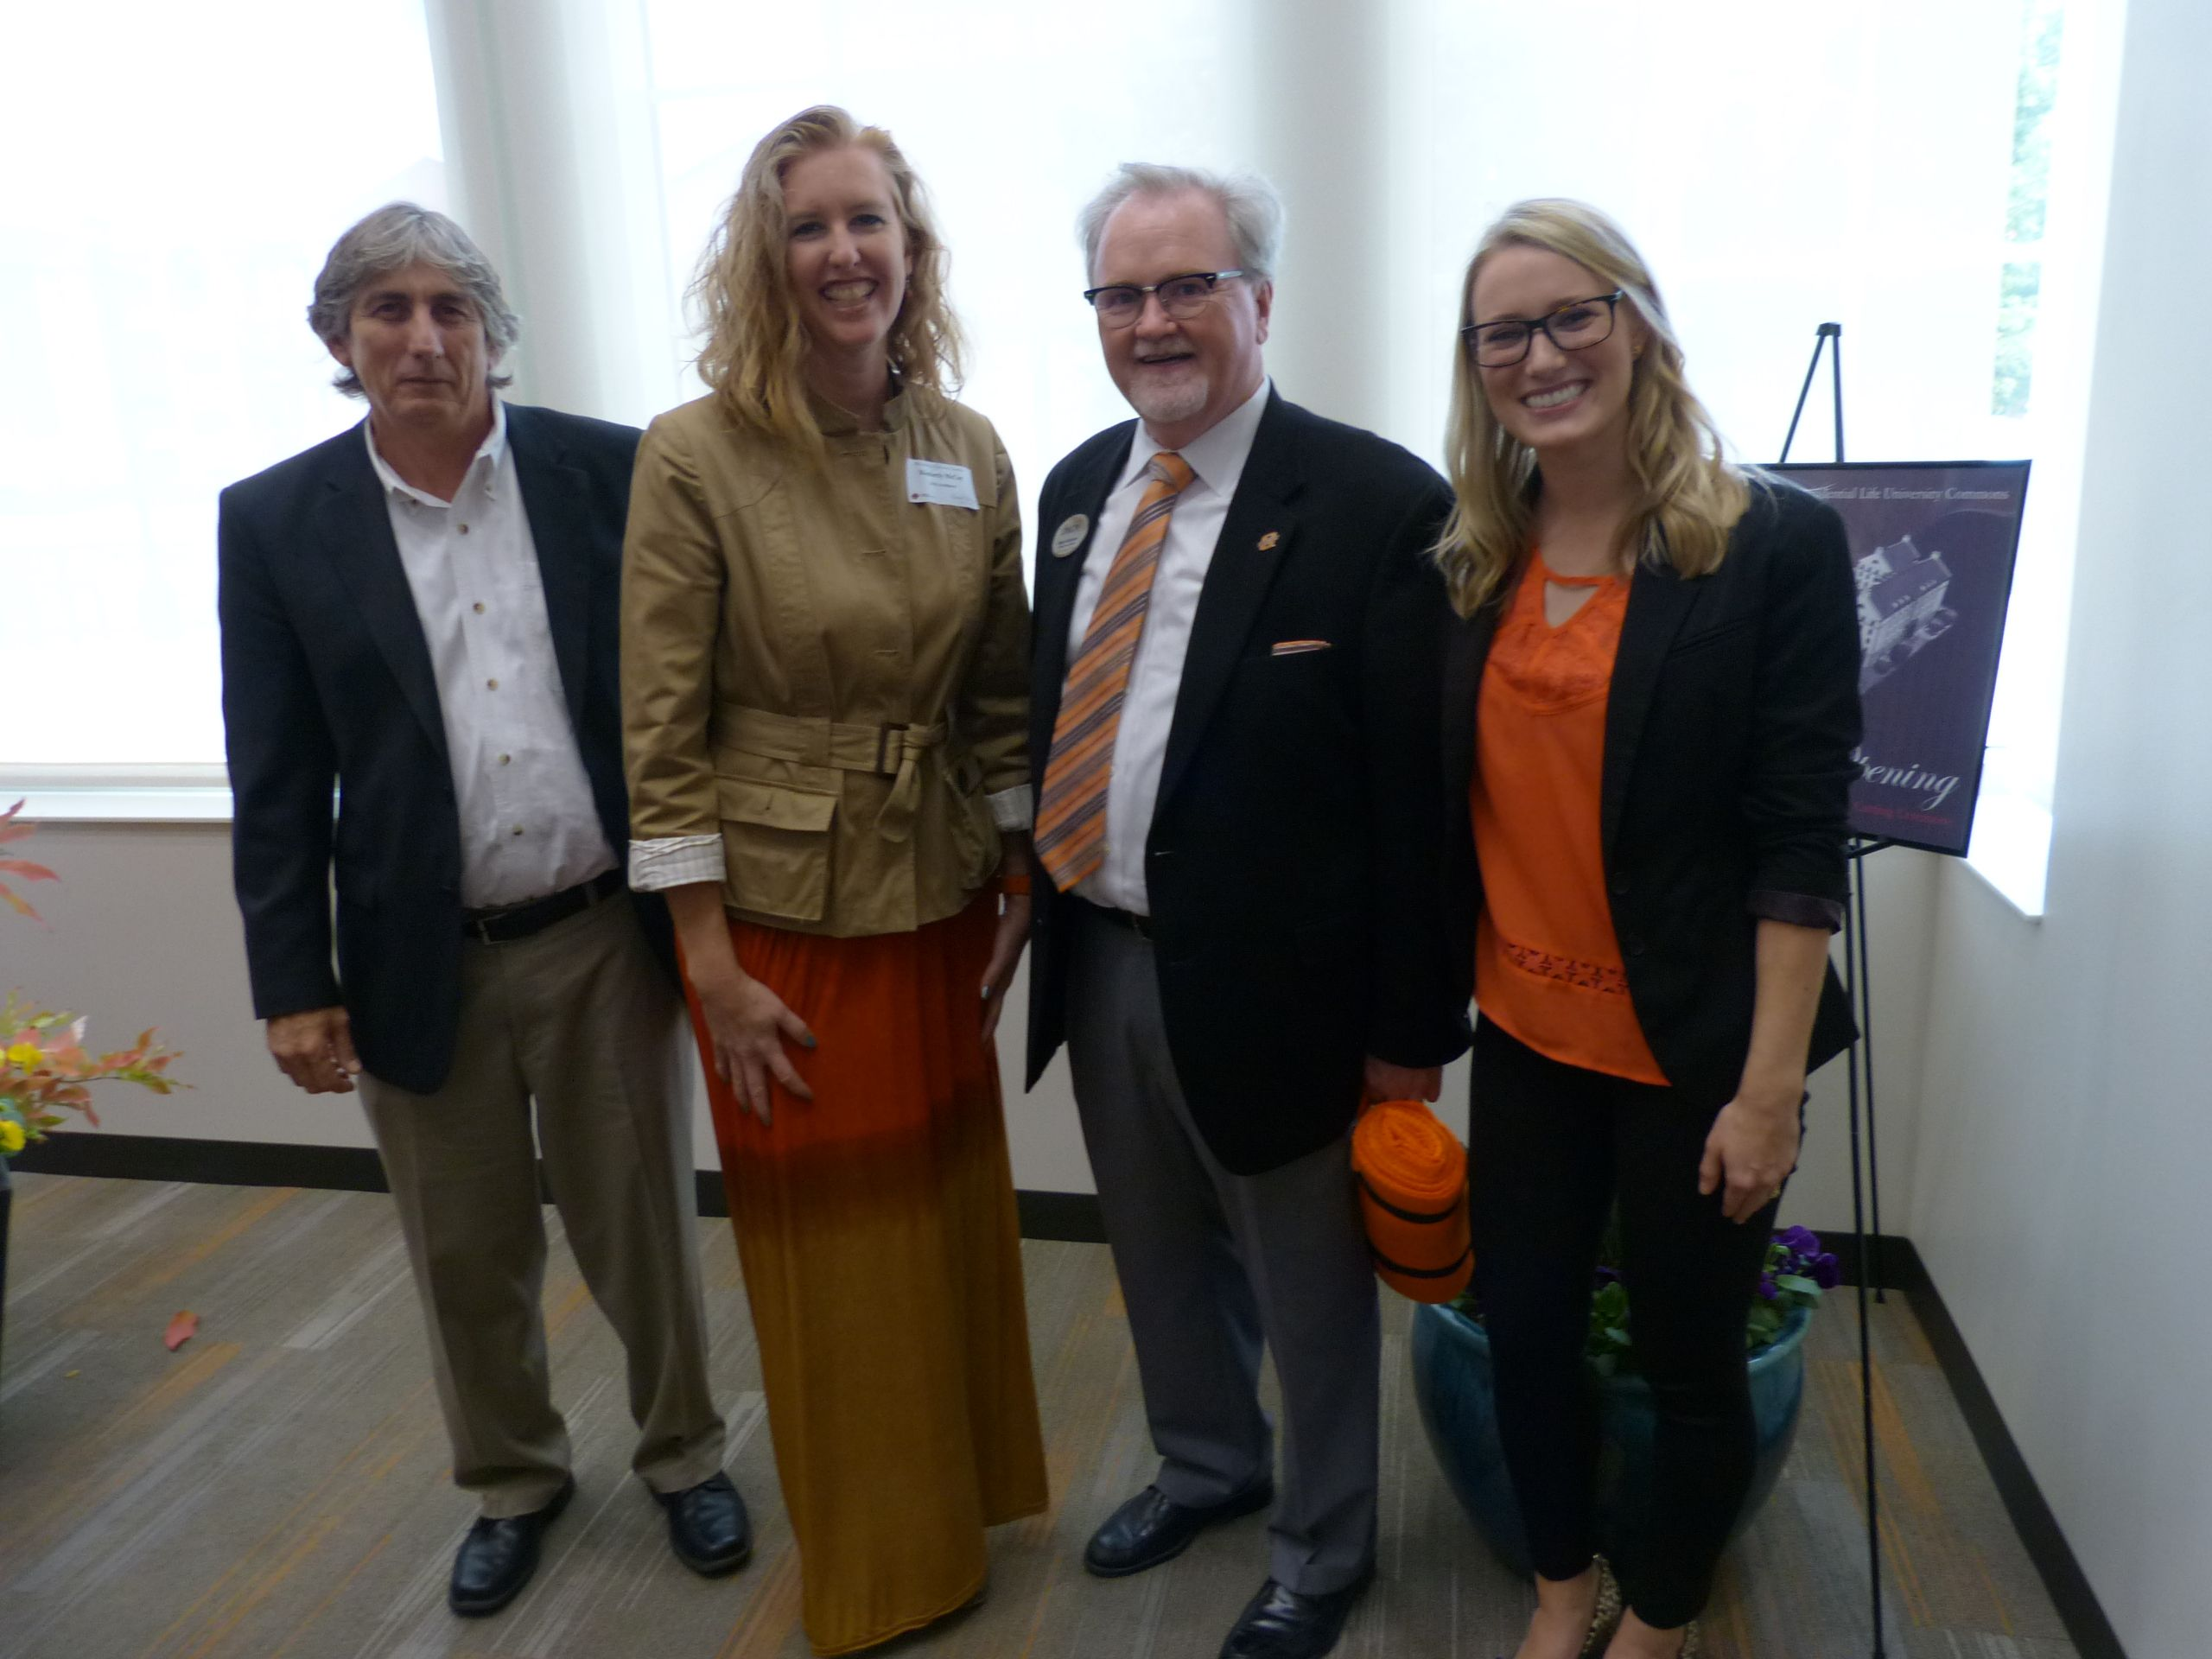 (L to R) Principal-in-Charge Mark Bragg, Project Manager Kim McCoy, OSU Assistant Vice President Student Affairs Mitch Kilcrease, Lead Interiors Emily Sappington, NCIDQ